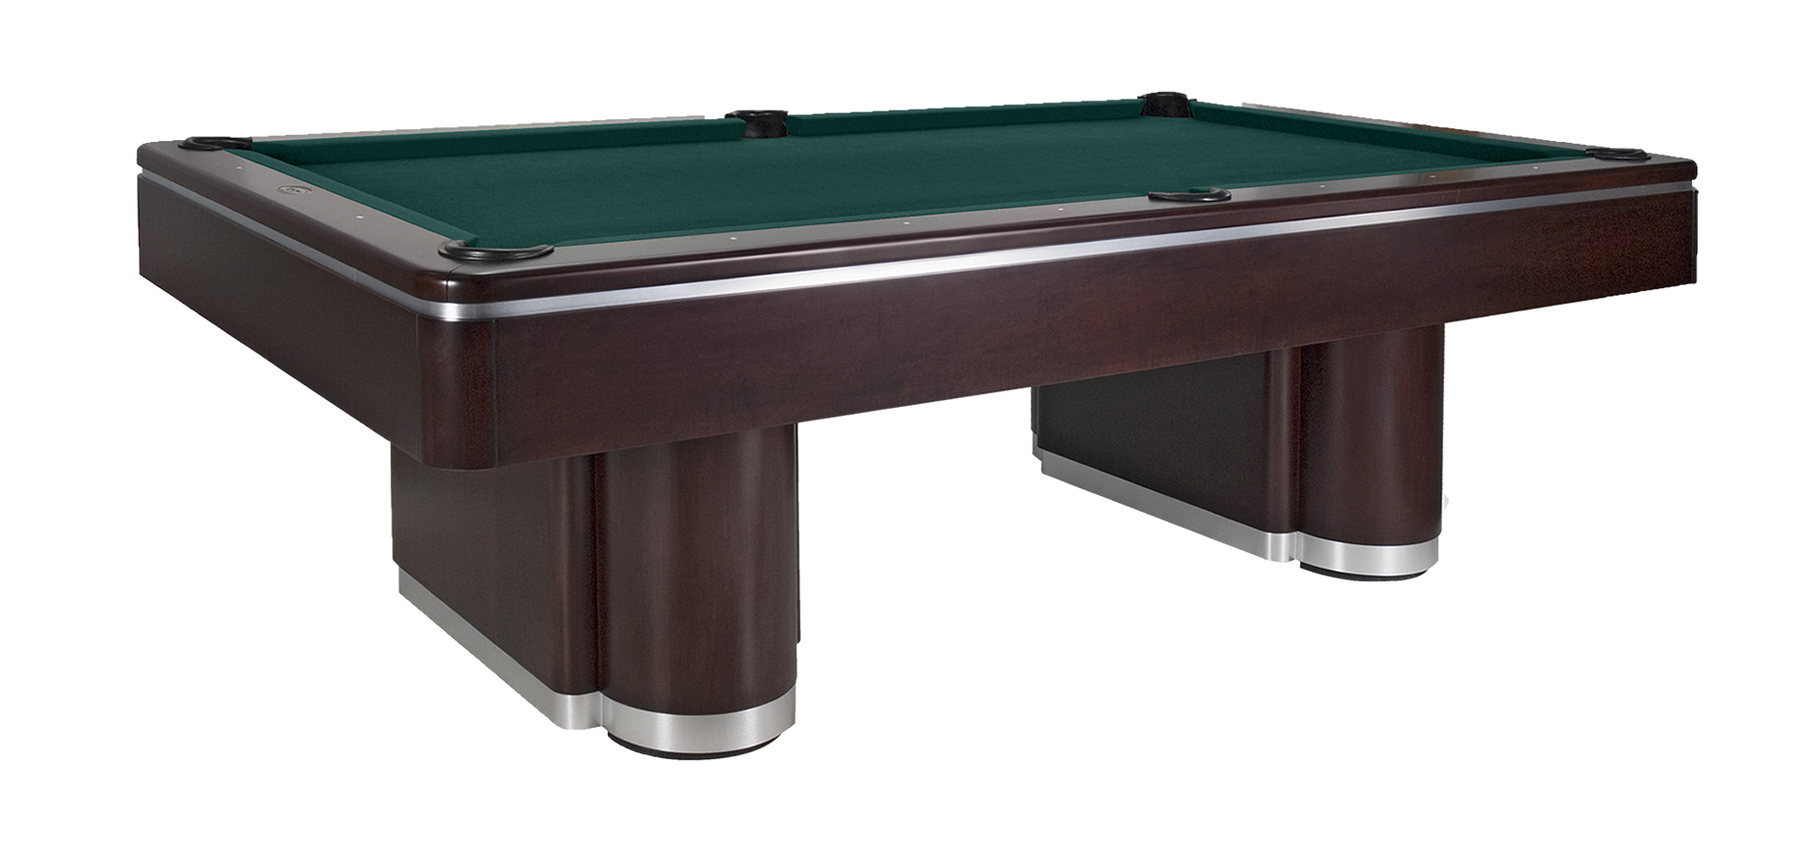 OLHAUSEN PLAZA POOL TABLE - Olhausen madison pool table